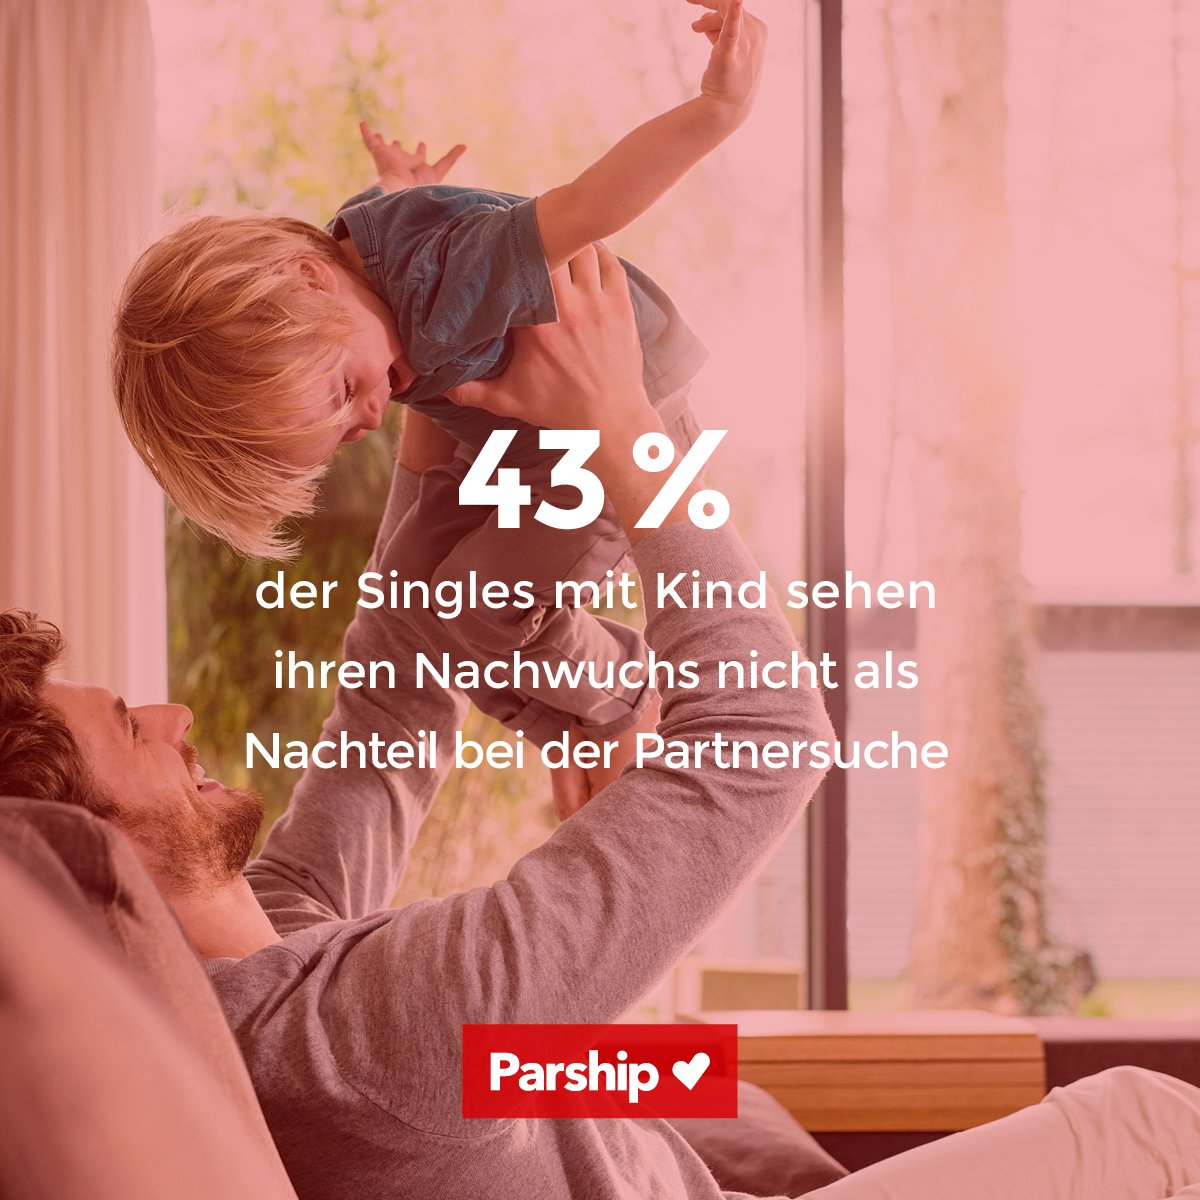 Dating-Seiten aller Altersgruppen